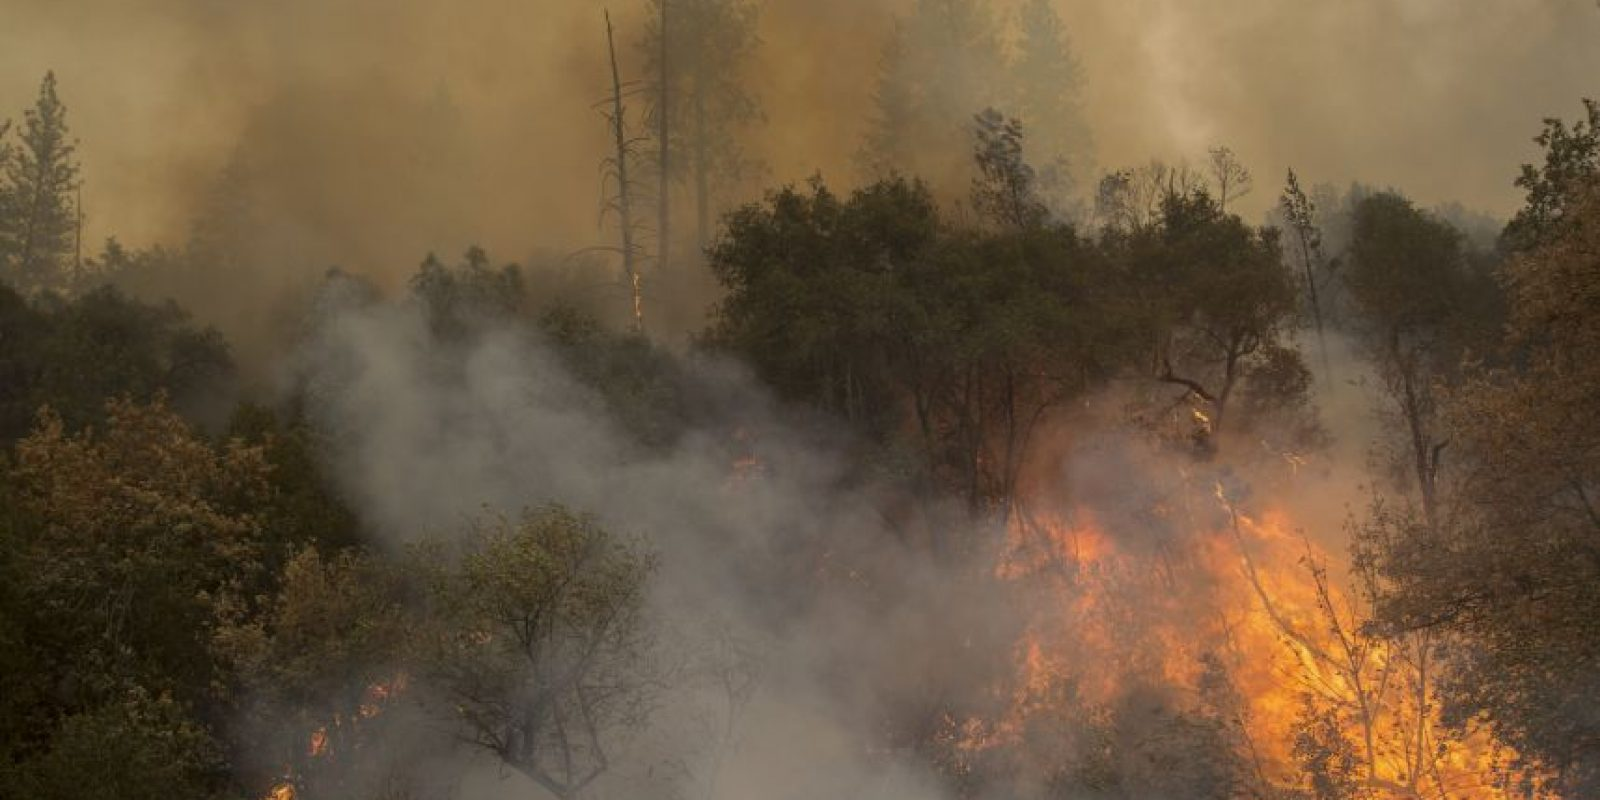 La Guardia civil detuvo al presunto culpable de 10 incendios. Foto: Getty Images